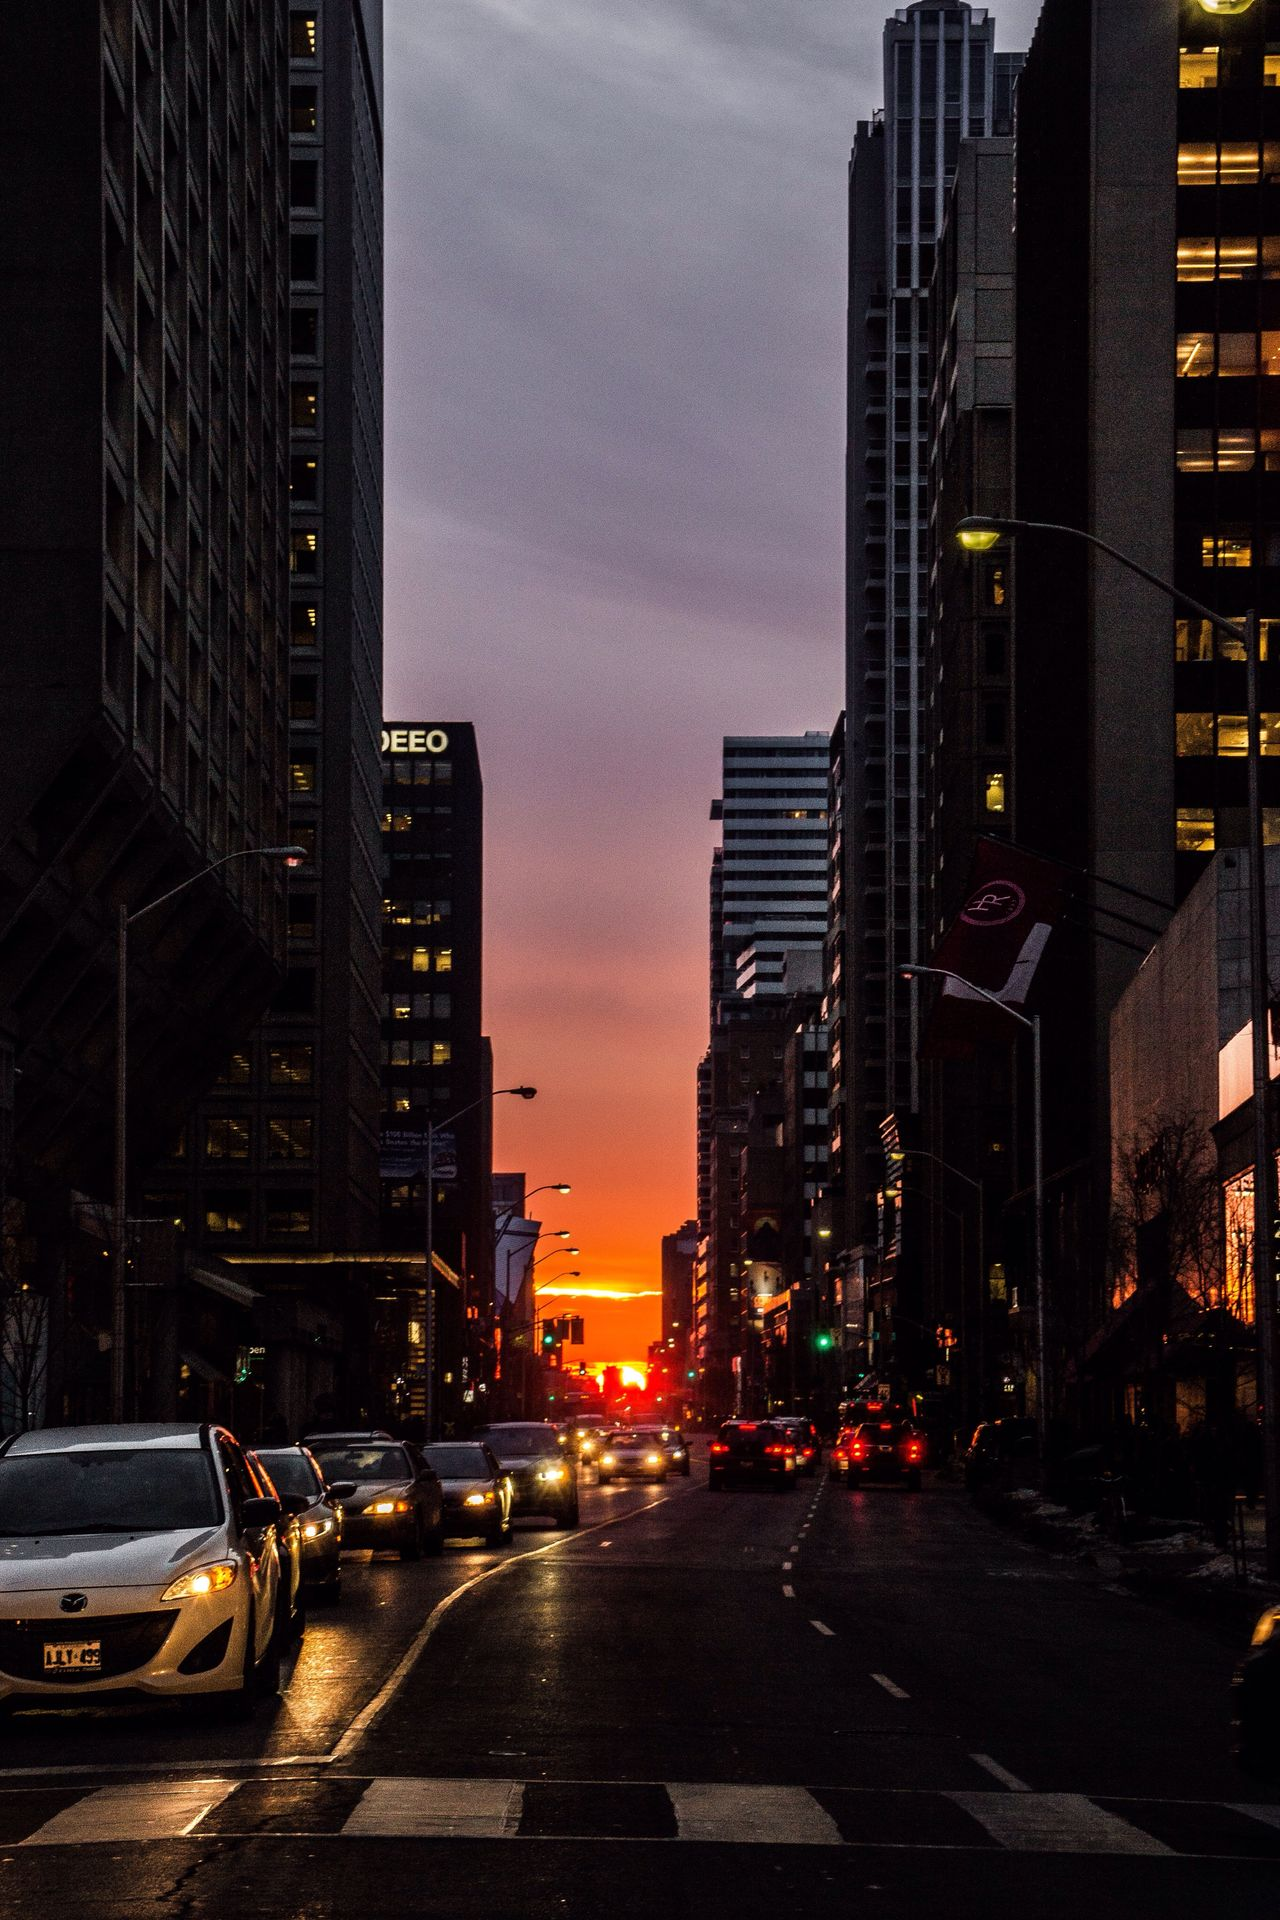 City Architecture Street Building Exterior Road Transportation Traffic Skyscraper Built Structure Car Outdoors Sunset City Life No People Tall Modern Sky Night Red Light